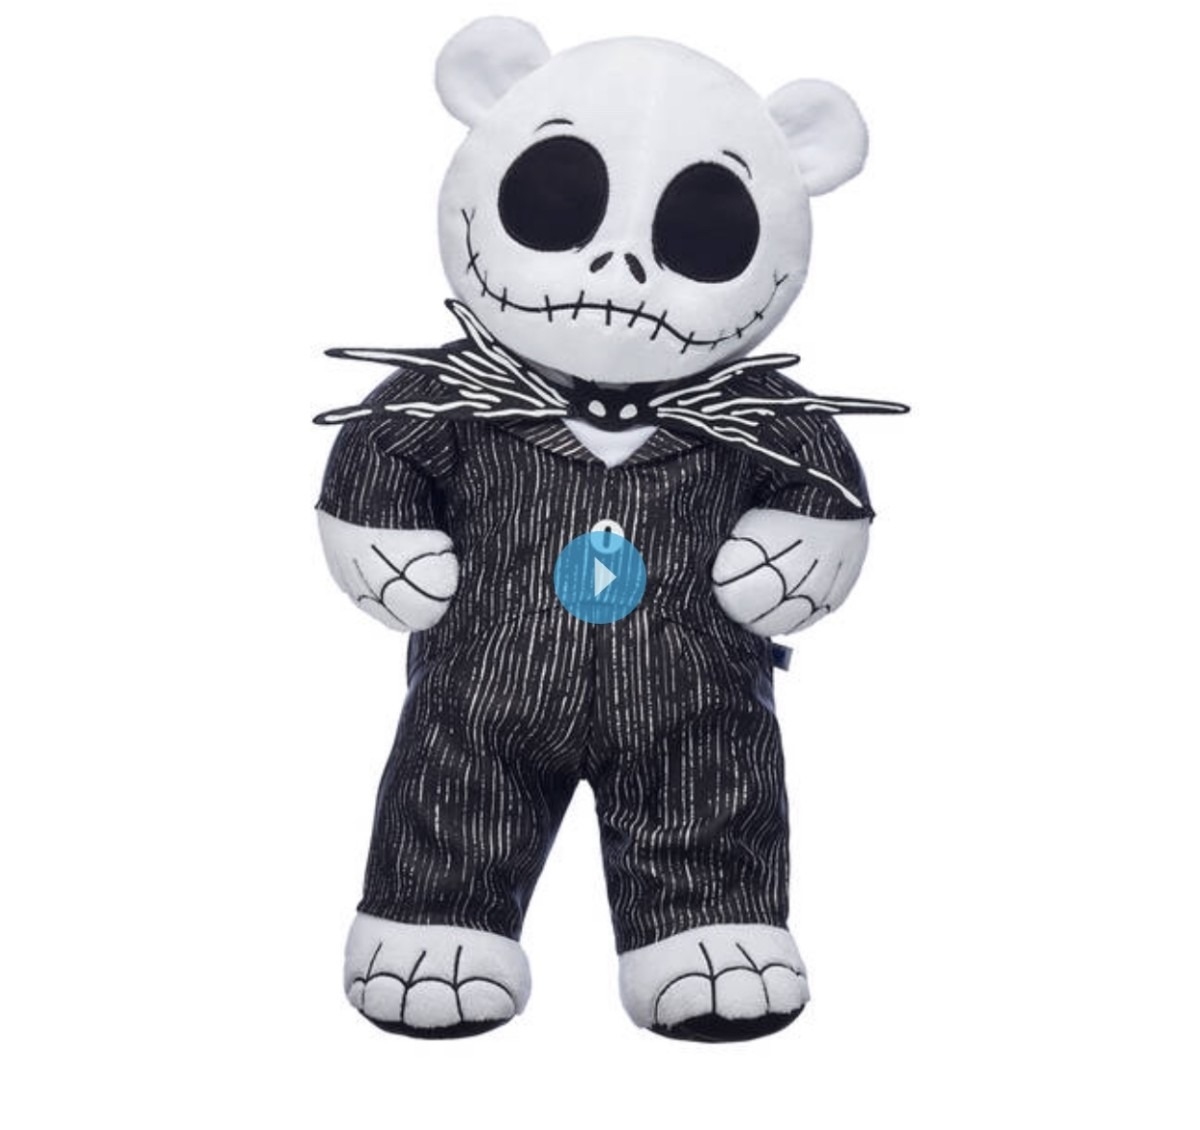 New Jack and Sally Bears from Build A Bear Workshop 4